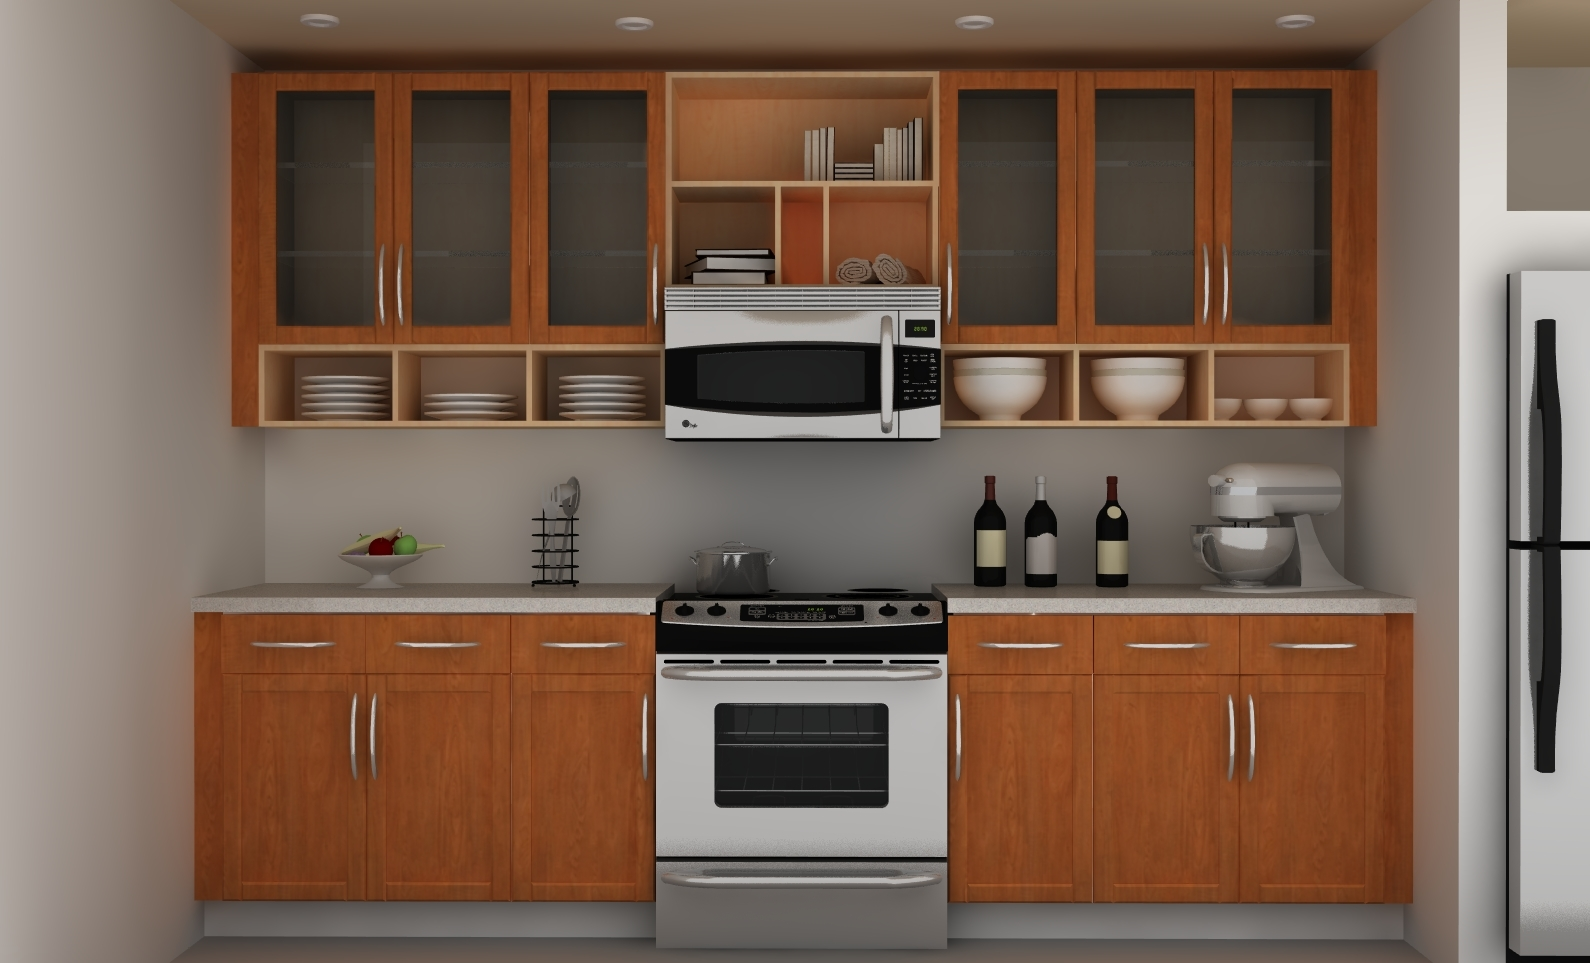 Wall Cabinets For Kitchen